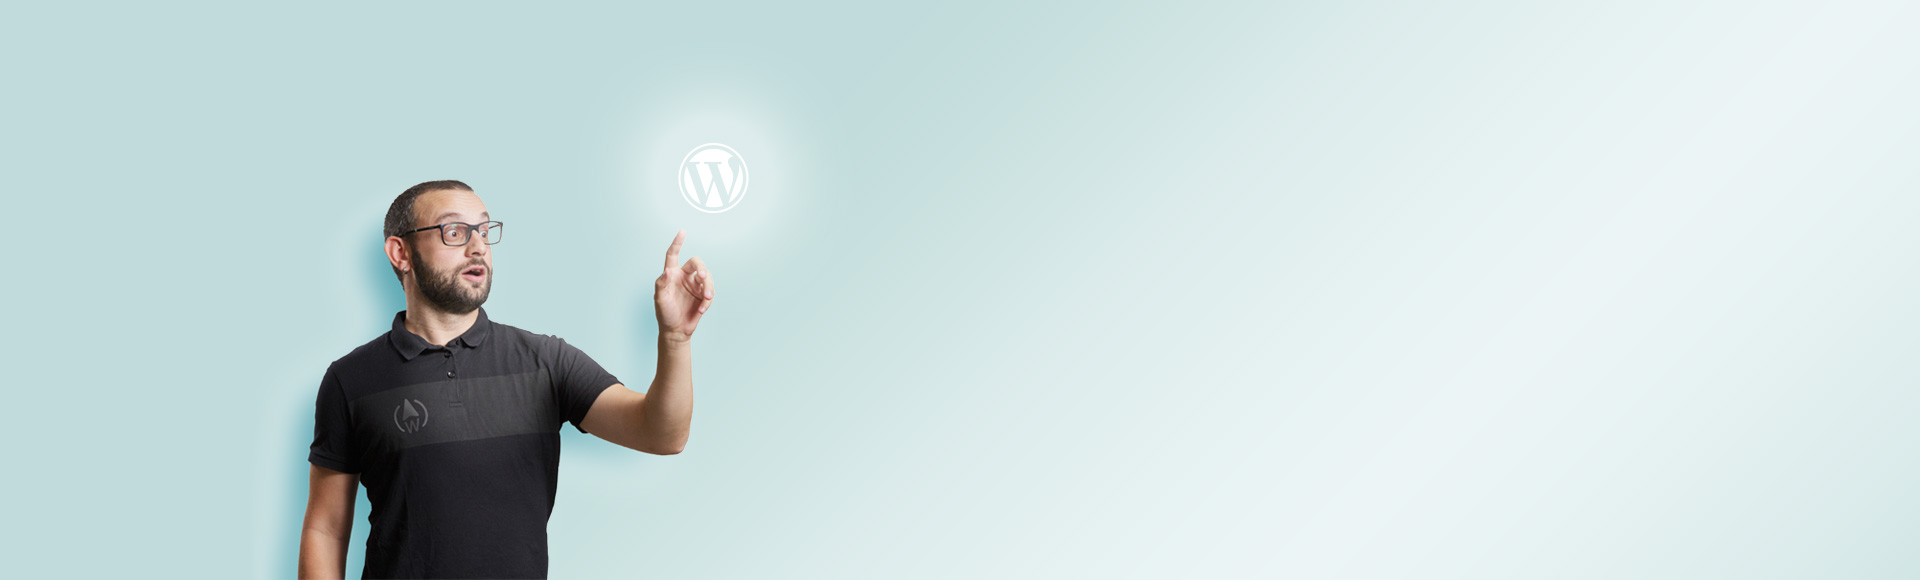 WordPress con autoinstalador